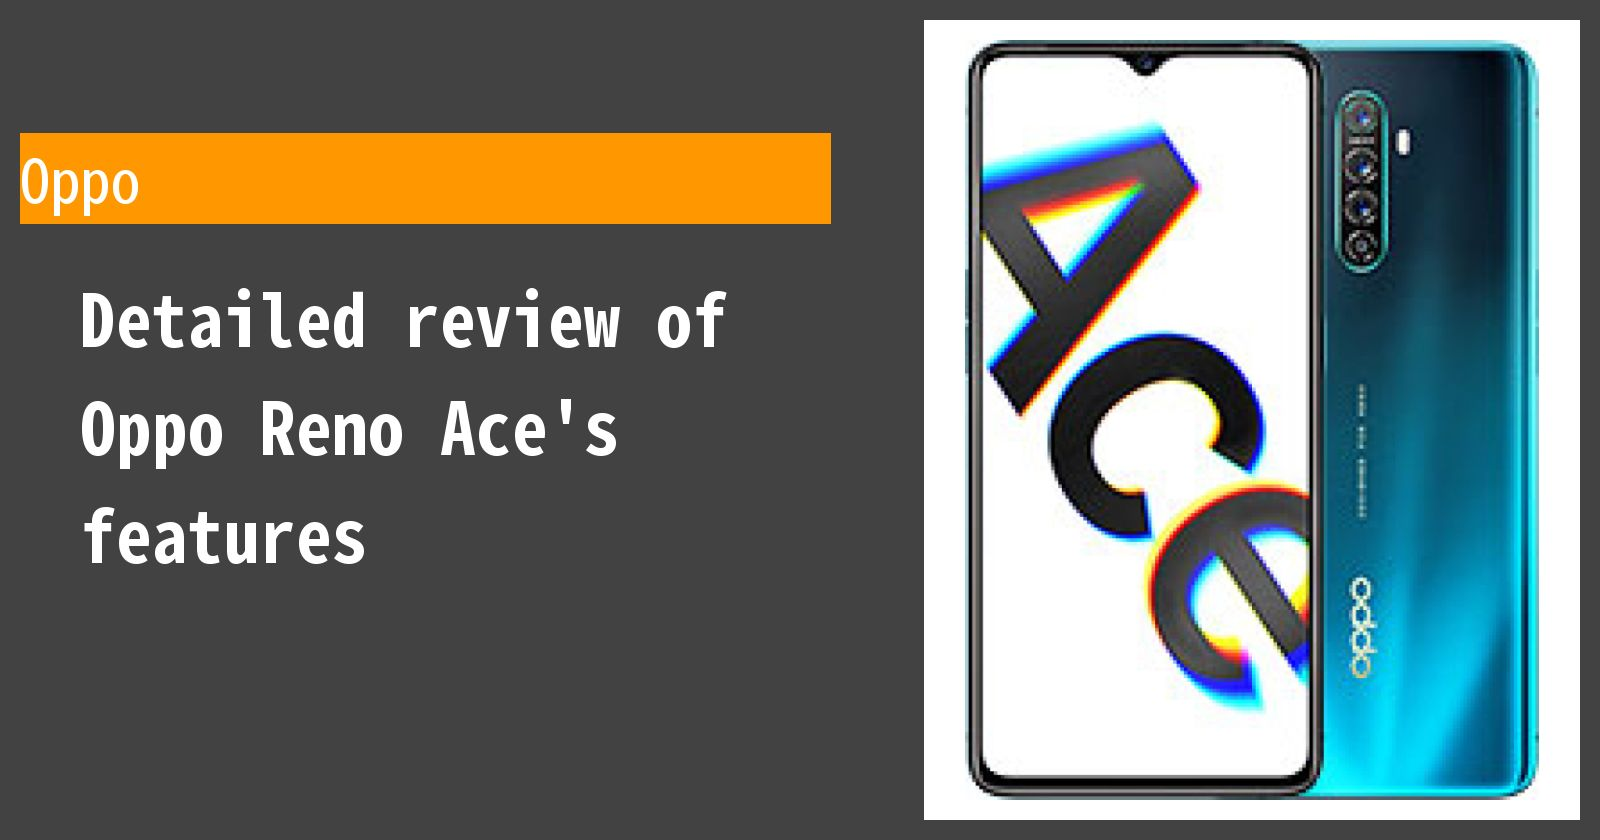 Detailed review of Oppo Reno Ace's features